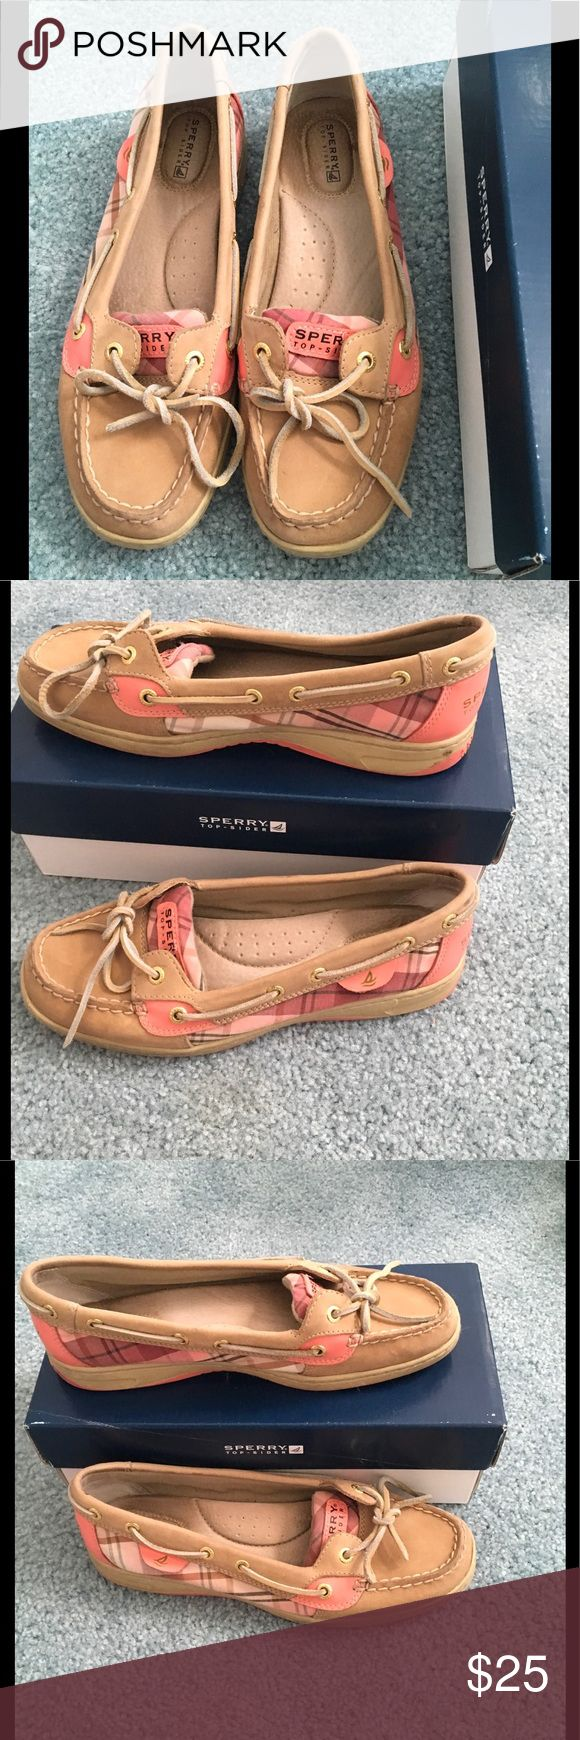 Sperry Top Sider Angelfish Linen Sperry Top Sider Angelfish Linen in Peach Plaid. Size 8M. EUC; worn 3 times. Sperry Top-Sider Shoes